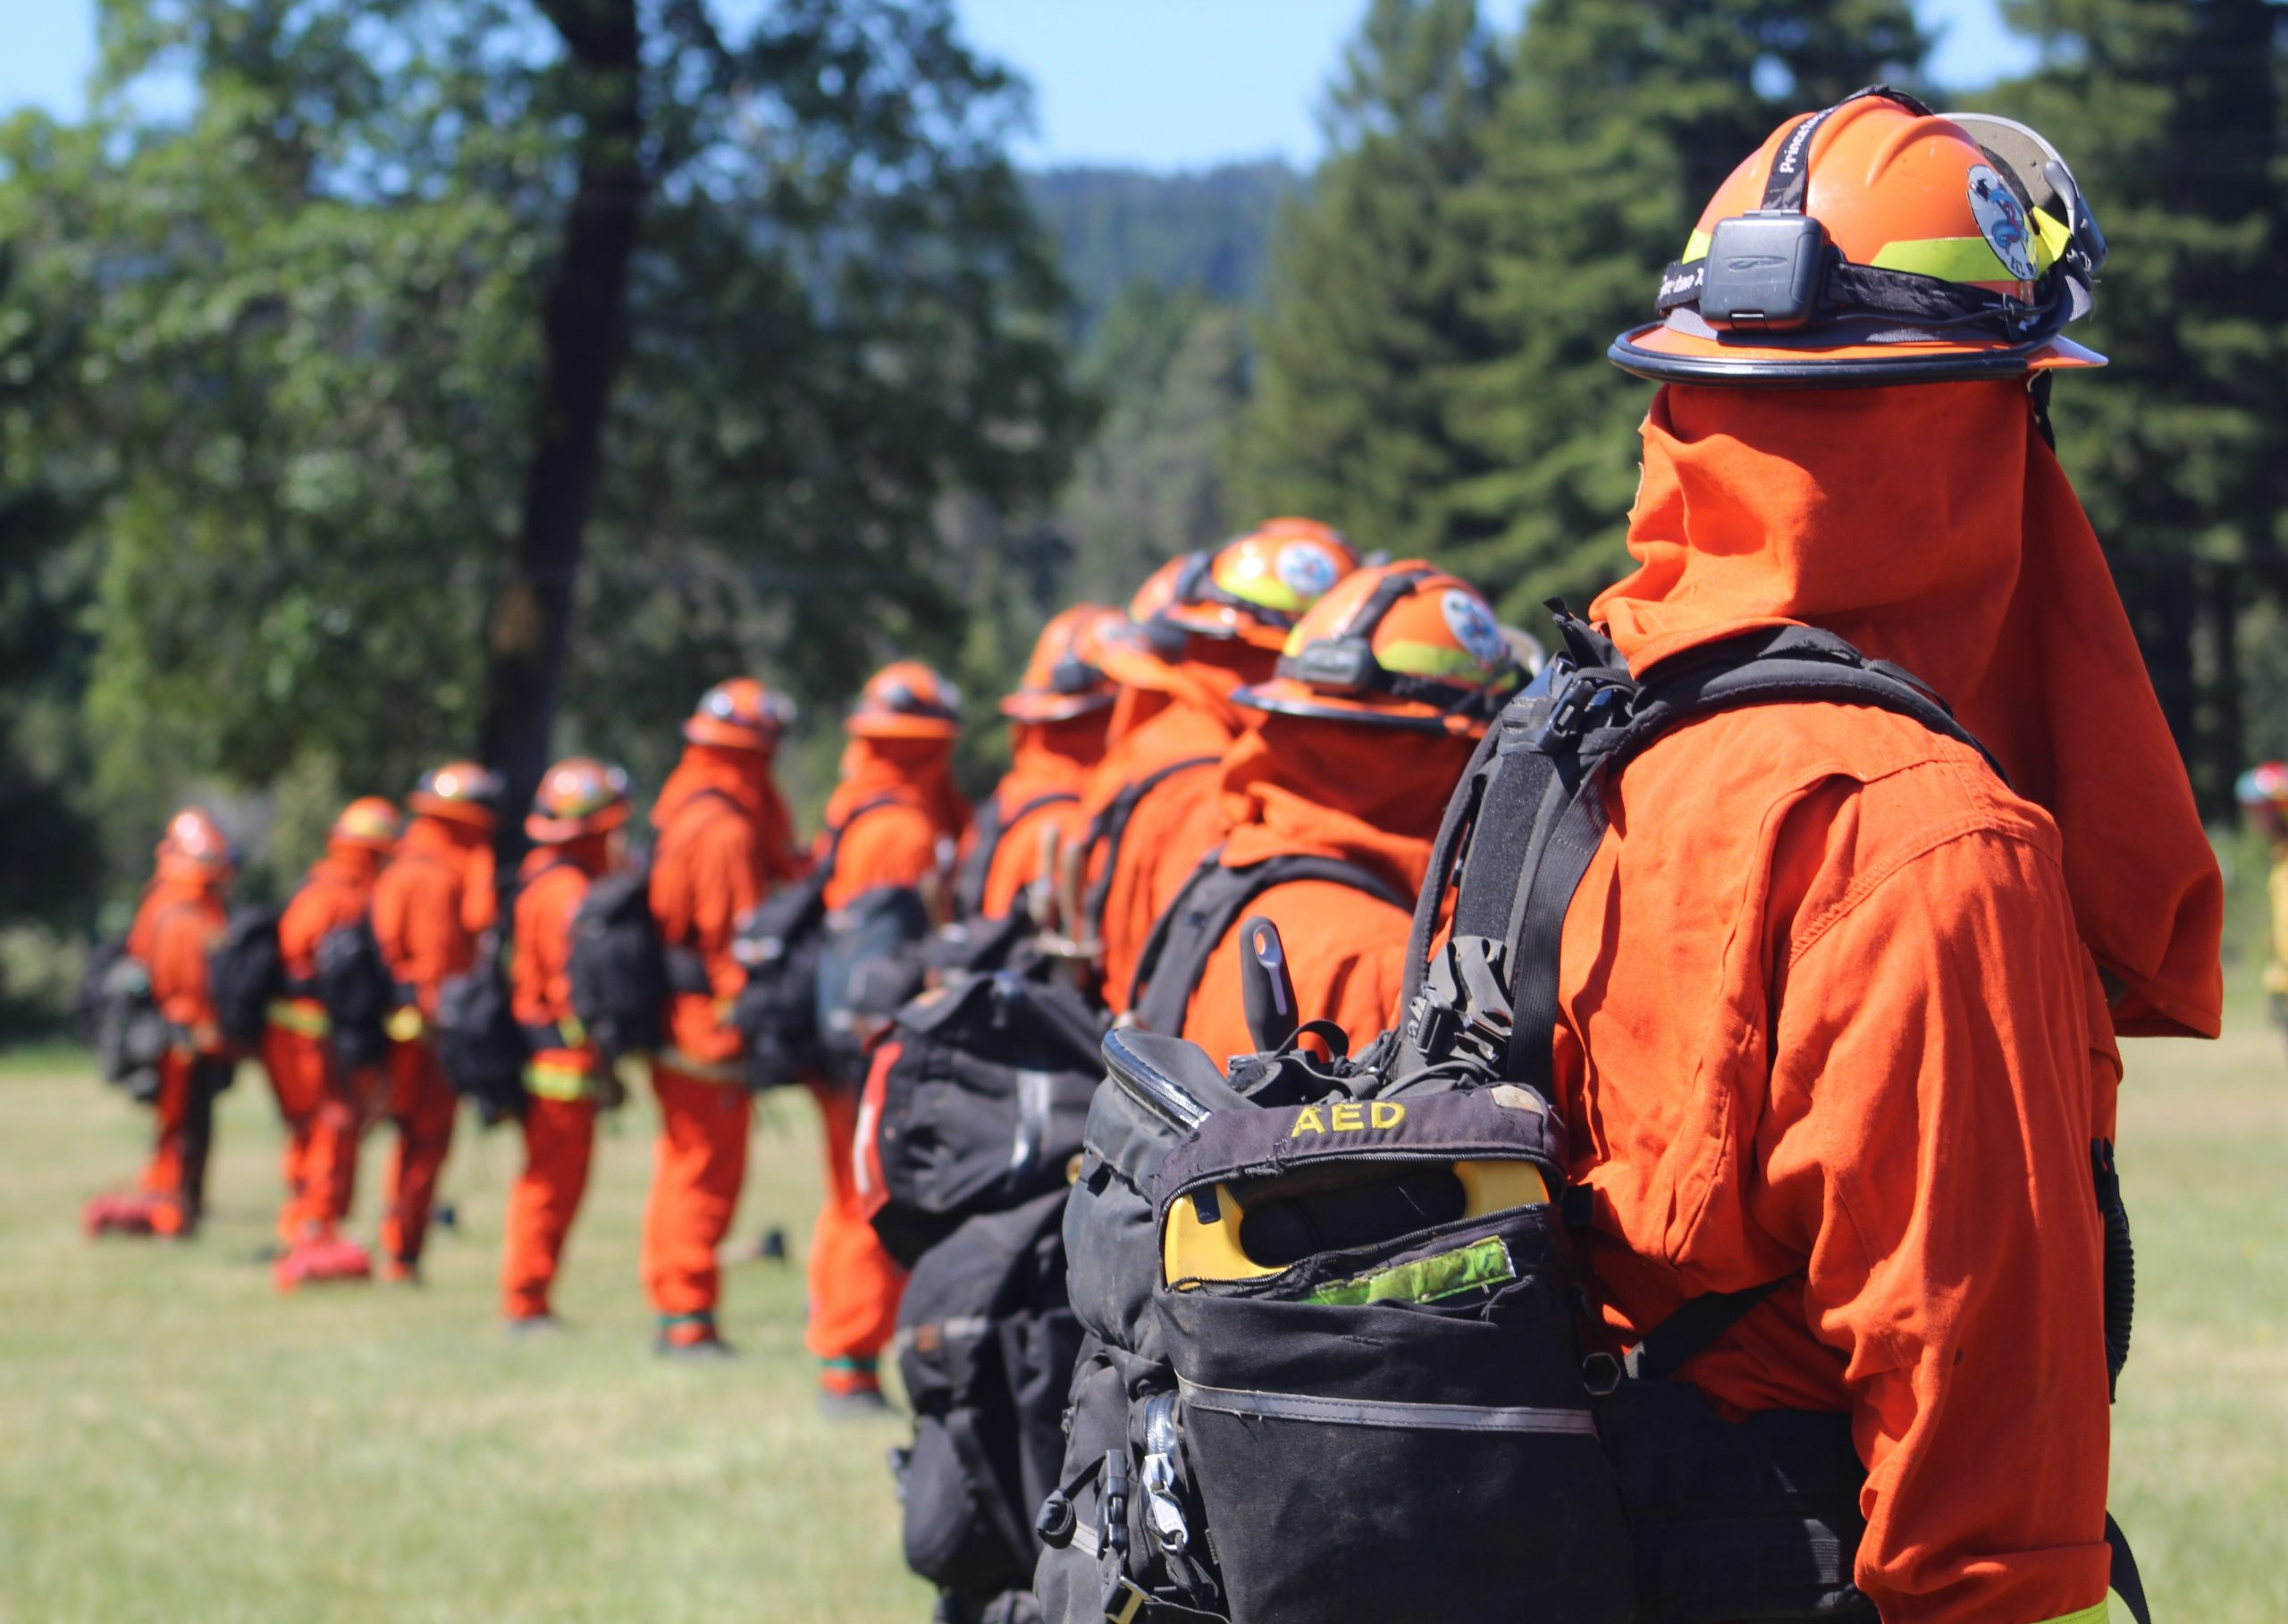 Firefighters in full gear stand in a line.